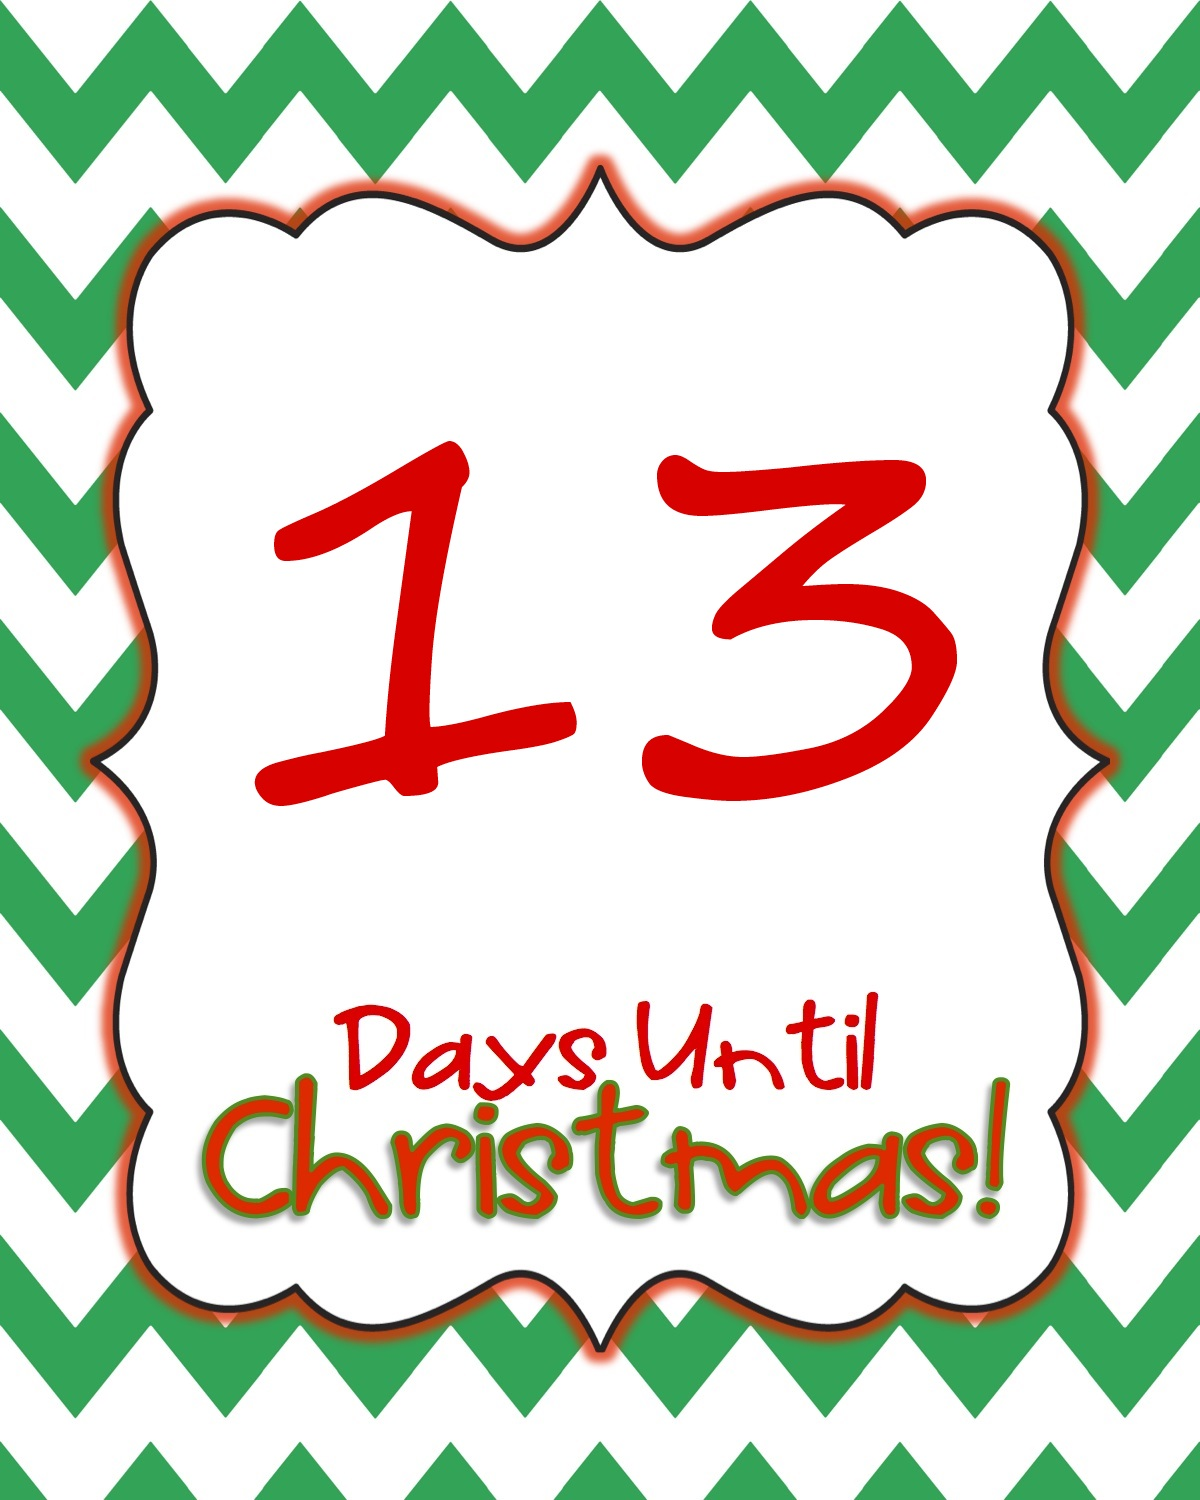 13 Days Until Christmas Images - Reverse Search